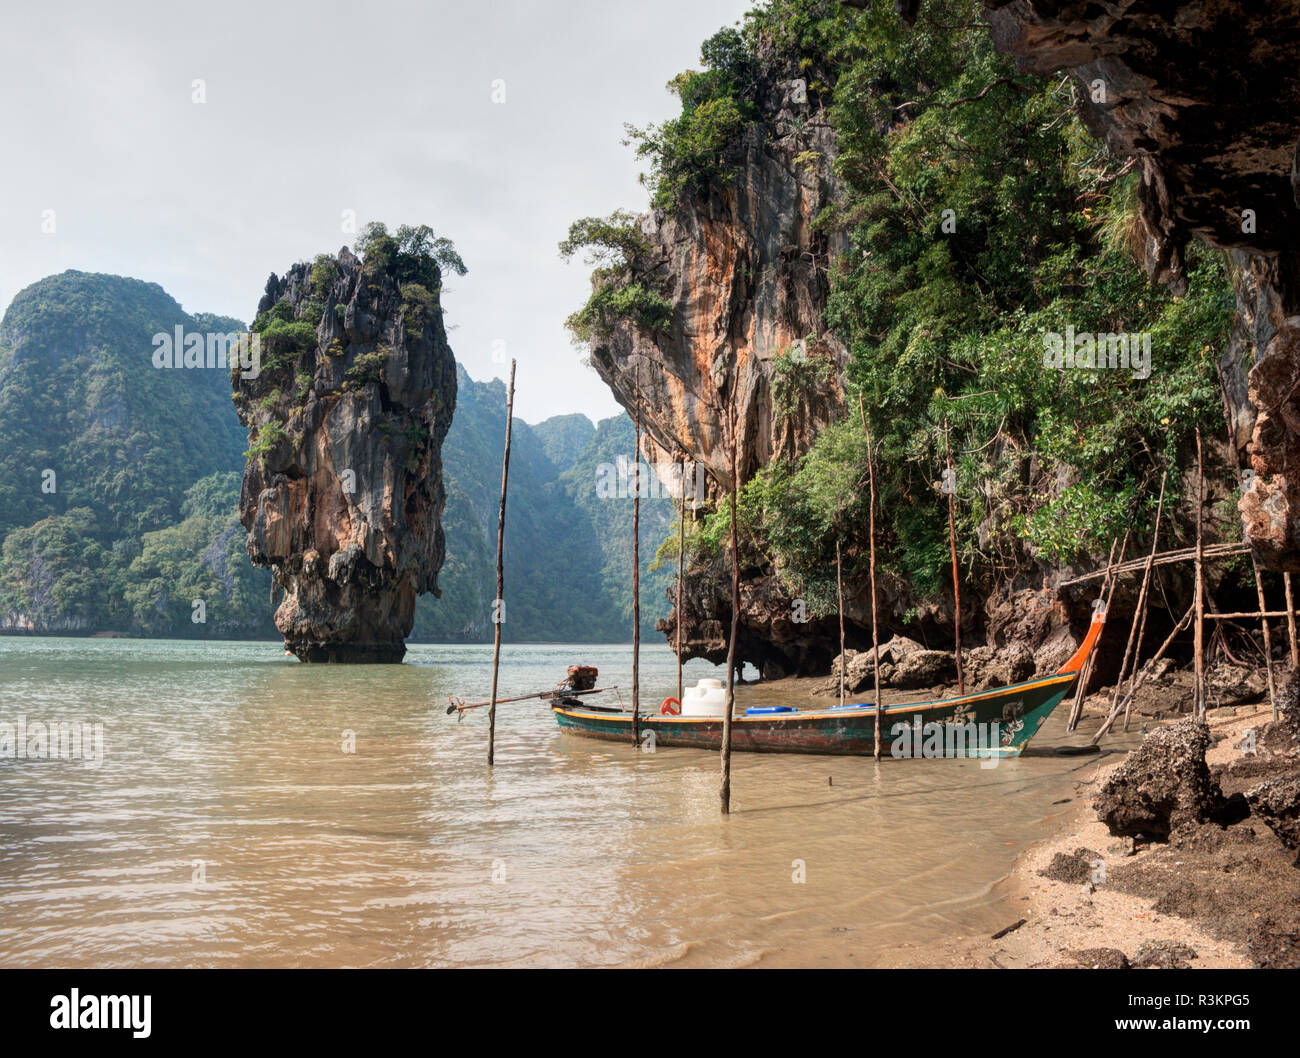 Thailand Phuket Phi Phi Islands Longtail Boats At James